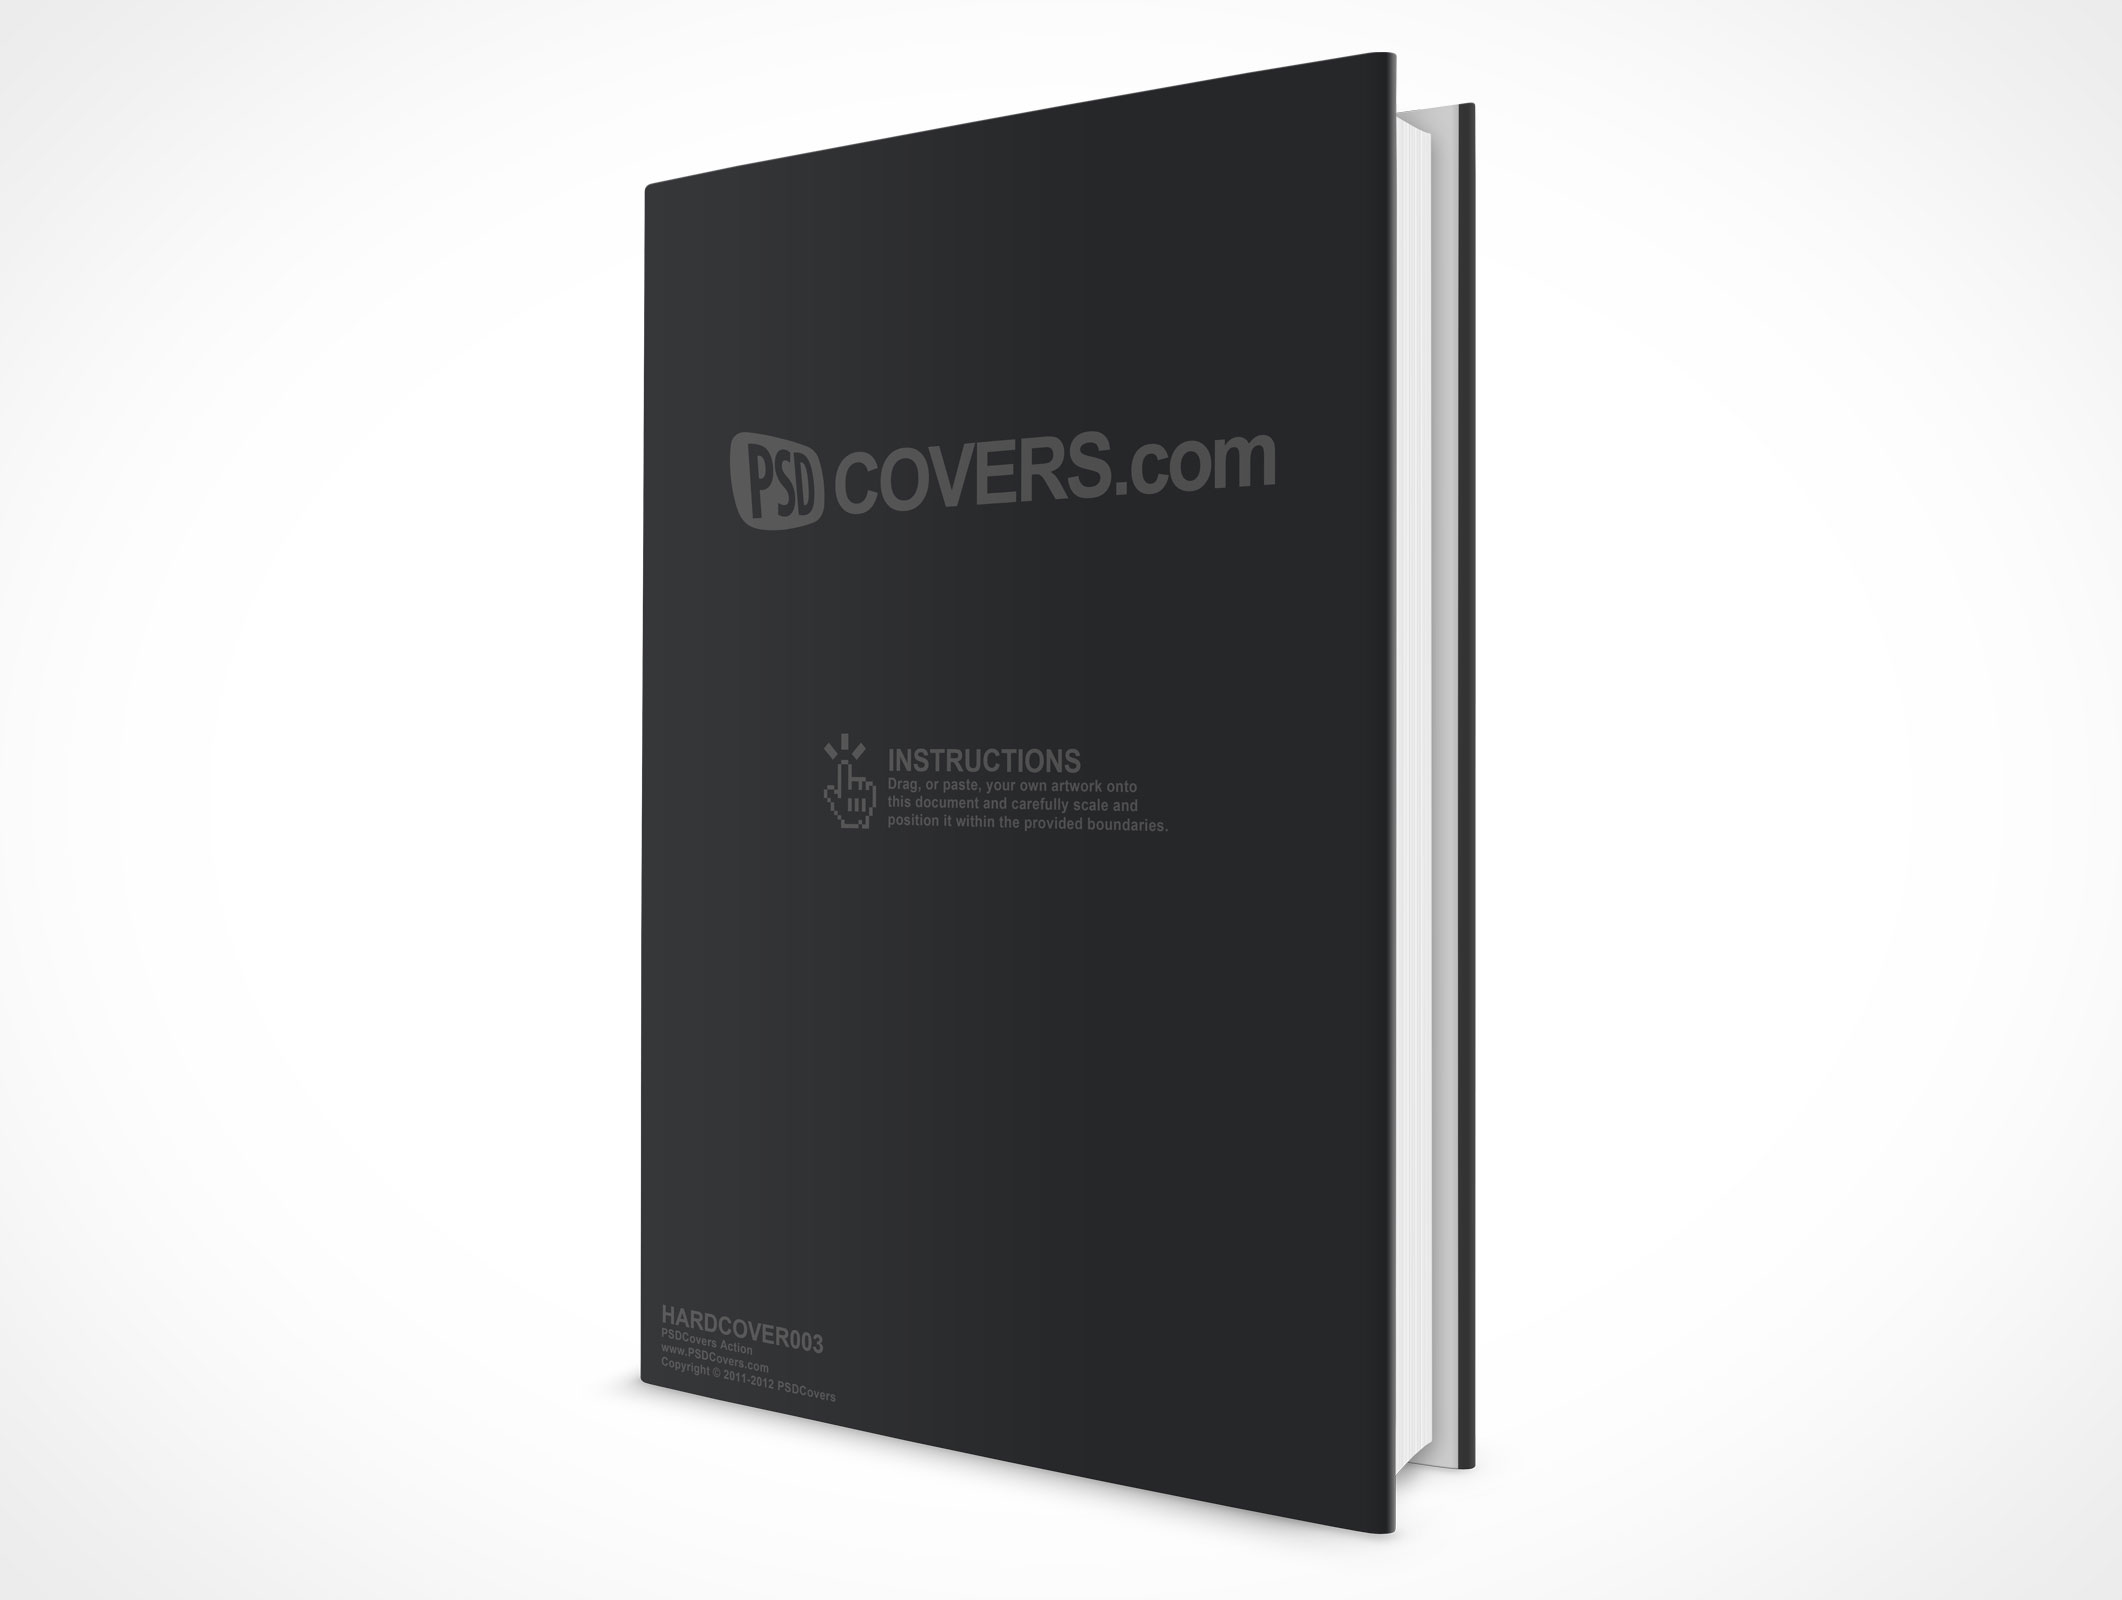 HARDCOVER003 • Market Your PSD Mockups for hardcover